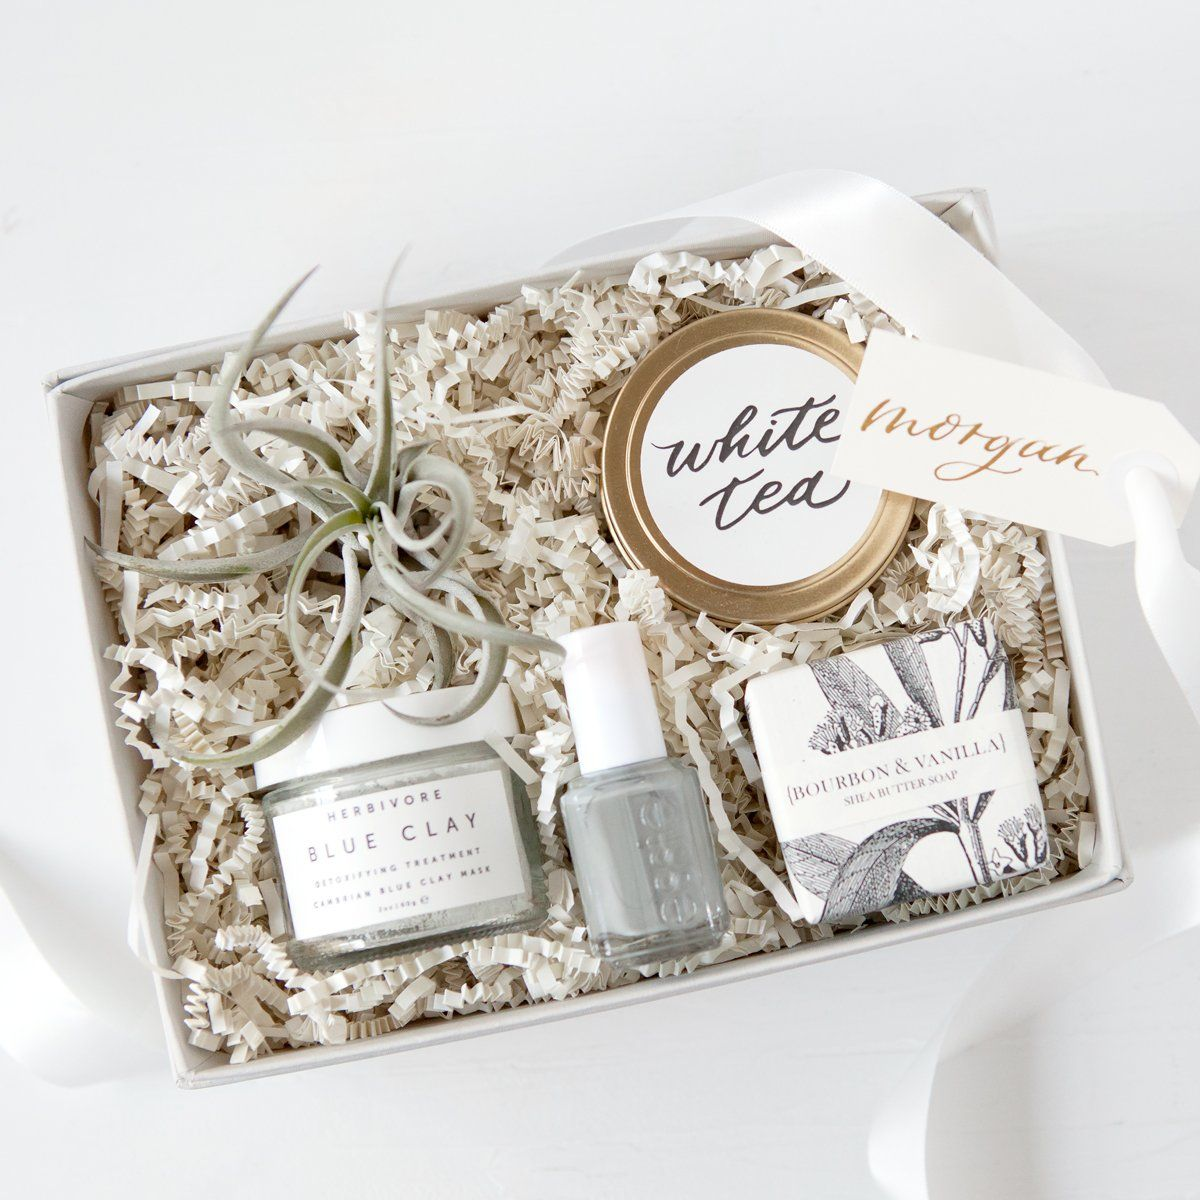 Petite Spa Gift Box Spa Gifts Diy Gifts For Mom Spa Gift Box